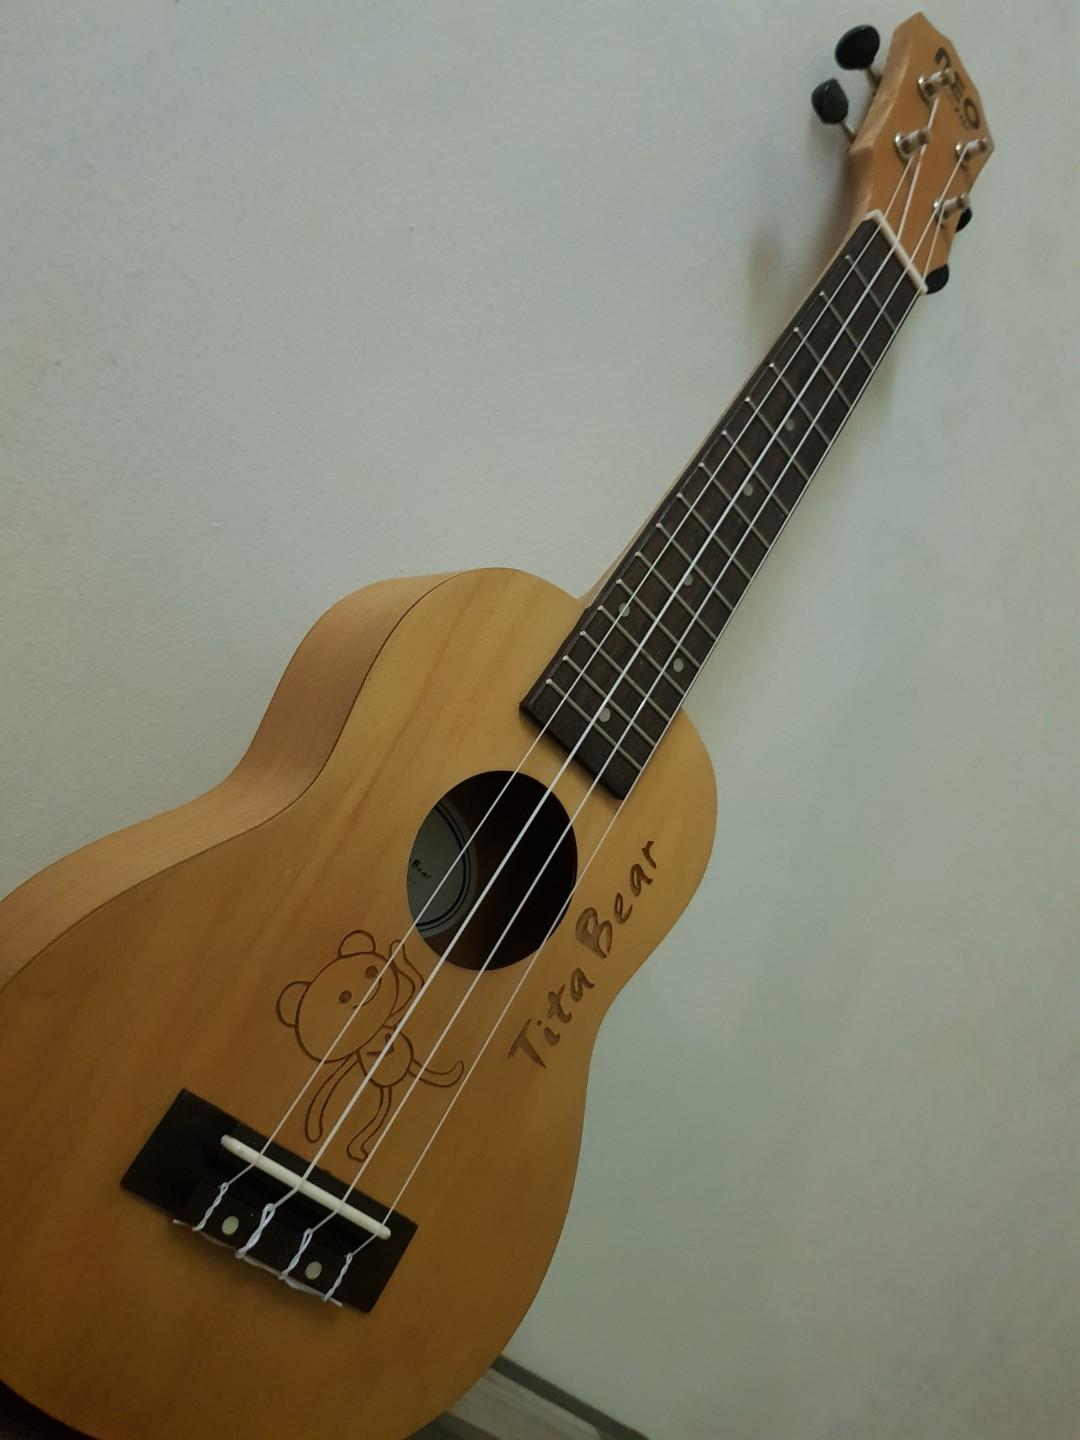 Brand New Mahogany Wood Ukelele with Bag(last price)